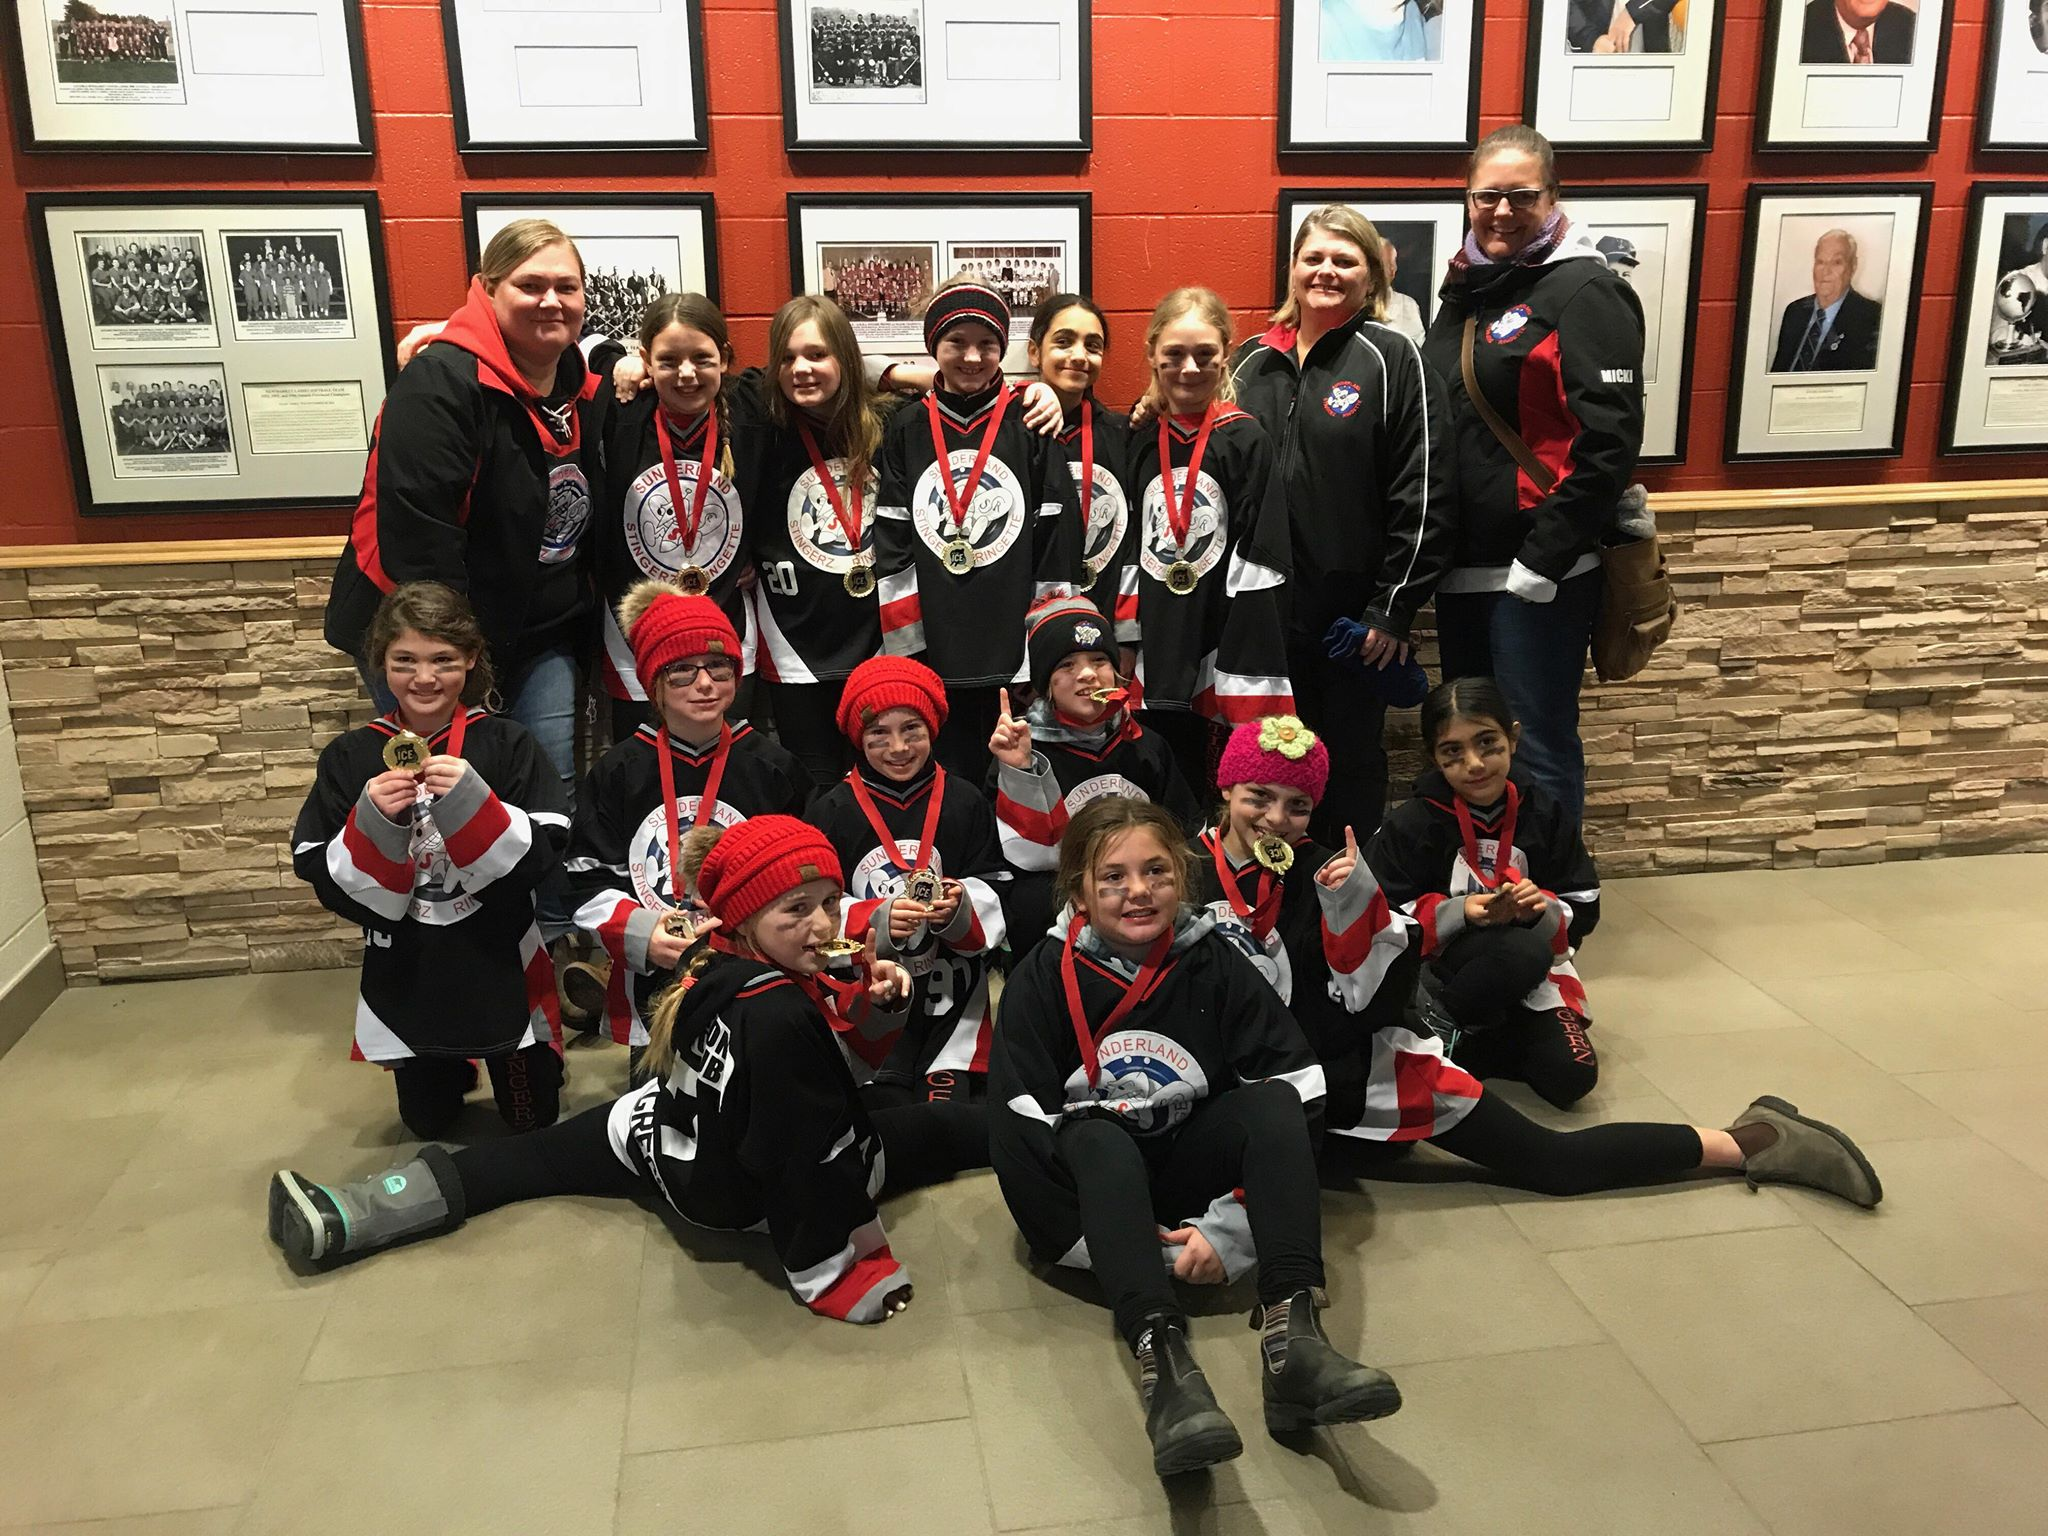 U10 Stingerz squad wins tournament title in Newmarket